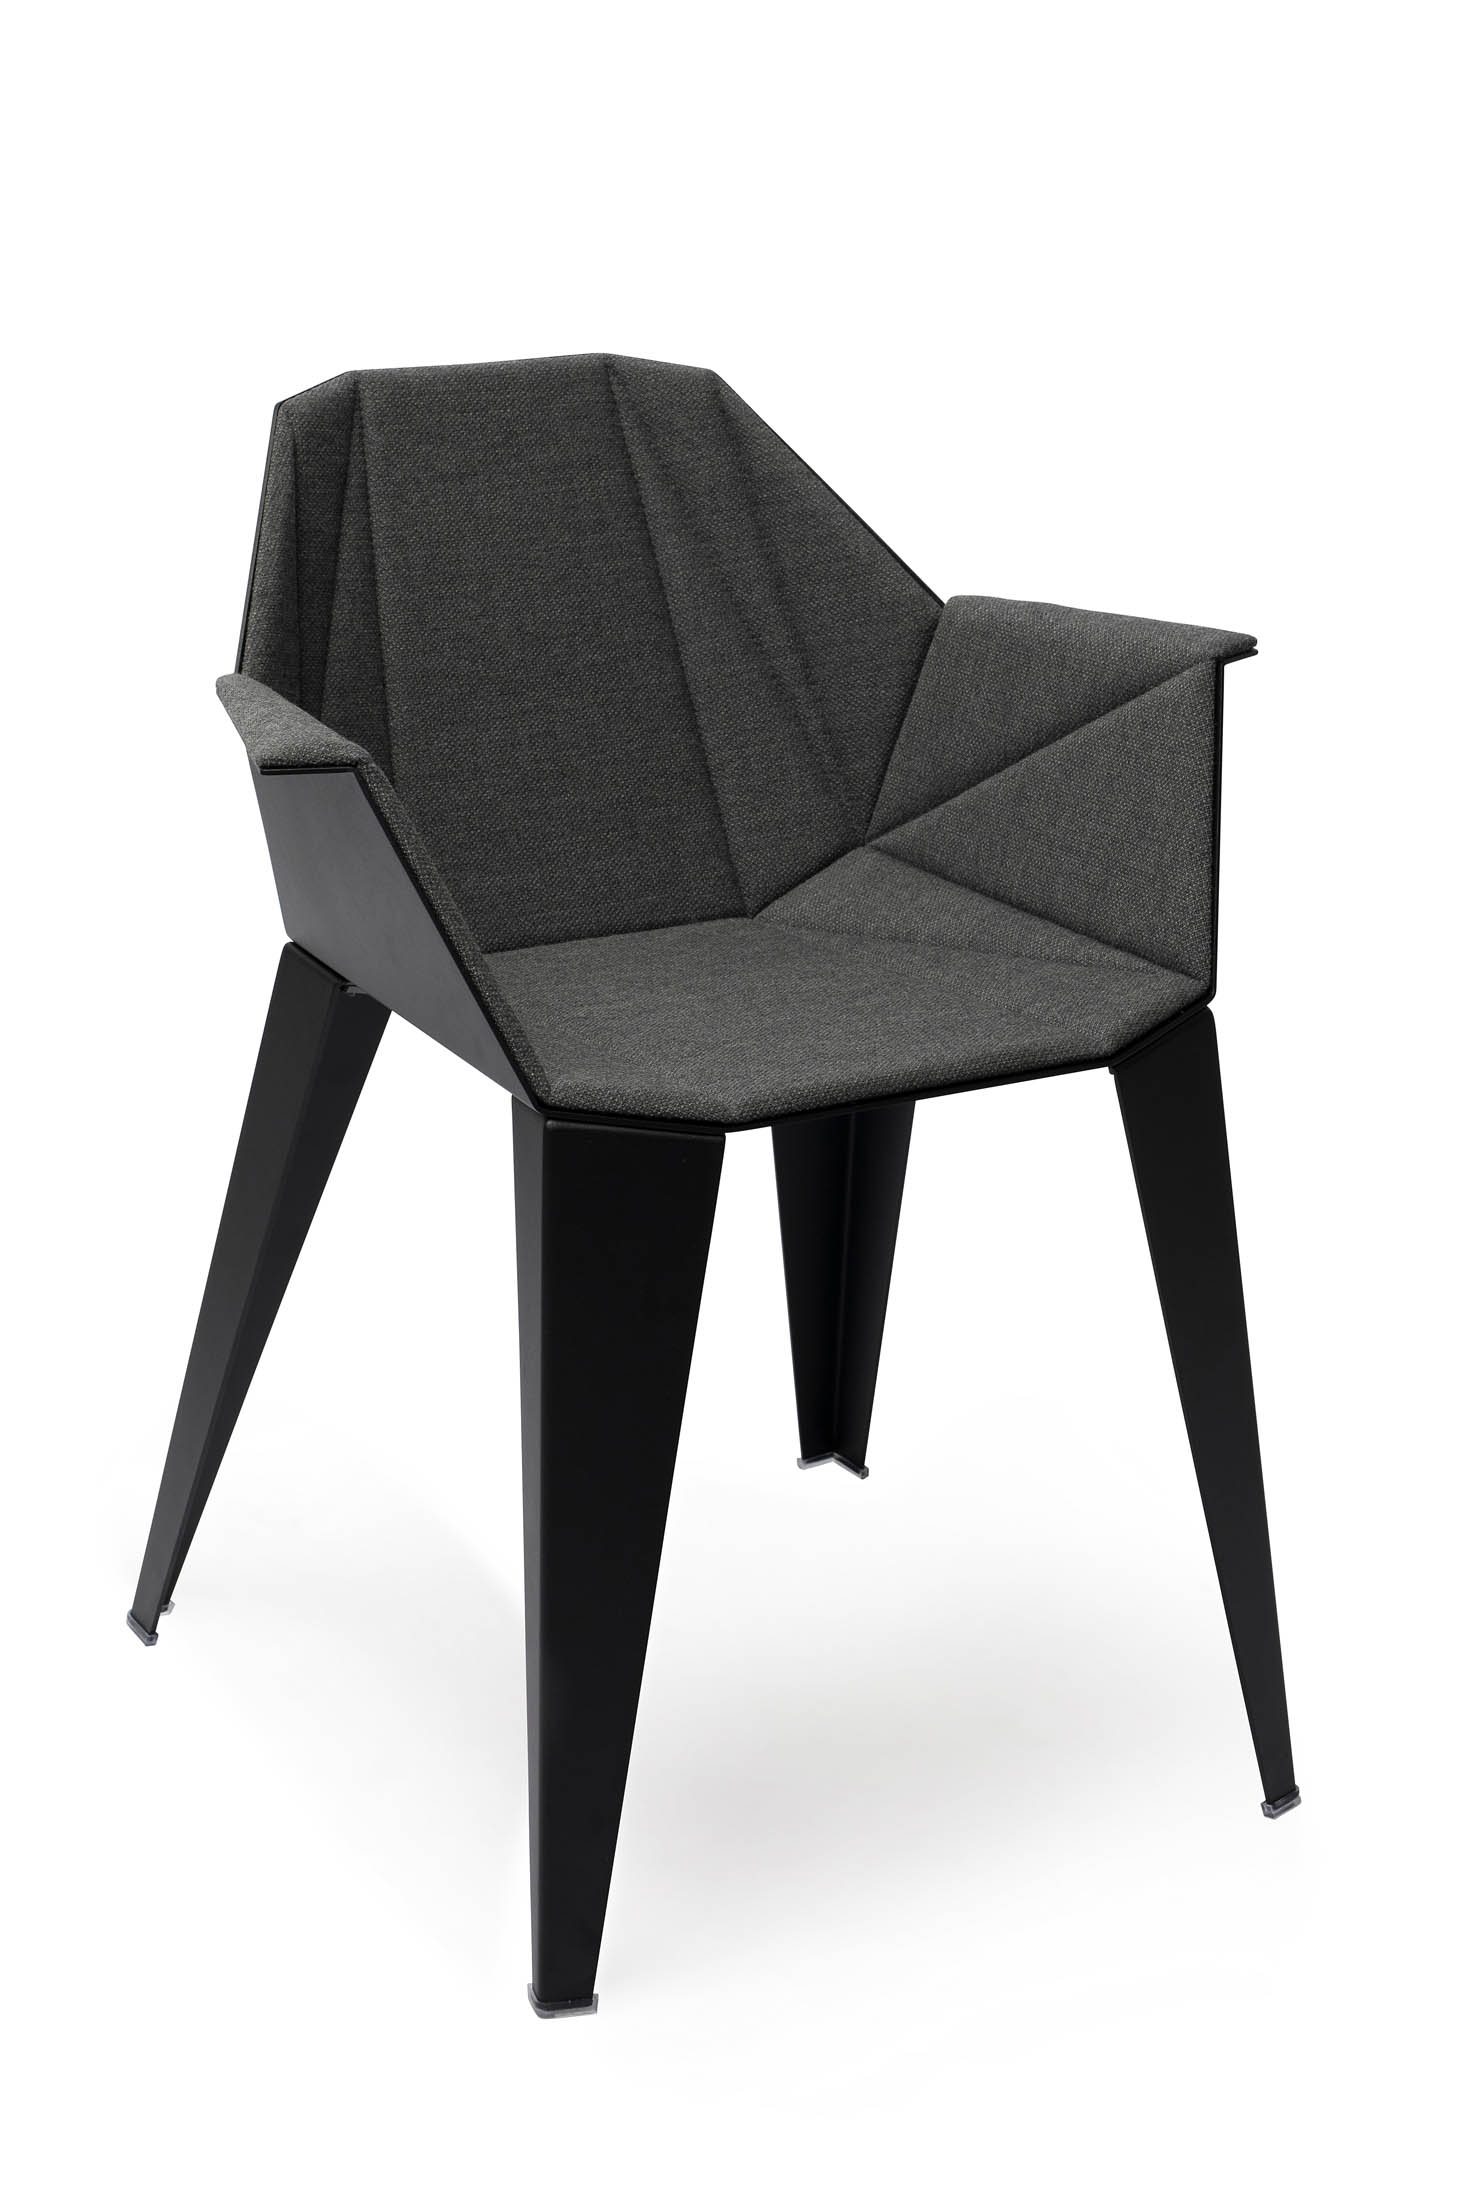 alumni-alpha-black-grey upholstered-side-angle.jpg